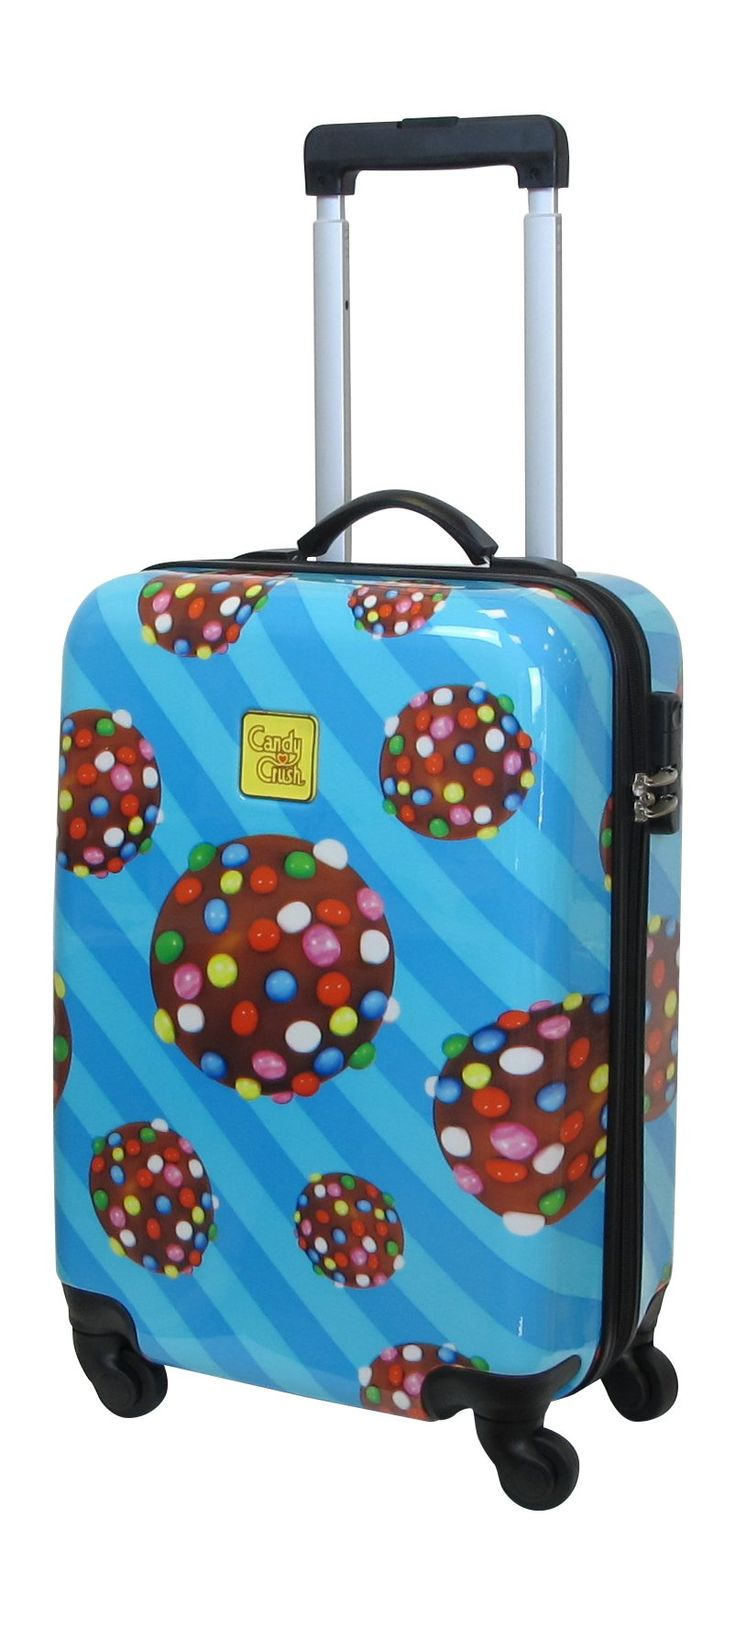 Candy Crush Cabin Bag Prallin Small, Multi-Colored, One Size. Aluminum adjustable handle. Plastic wheels.